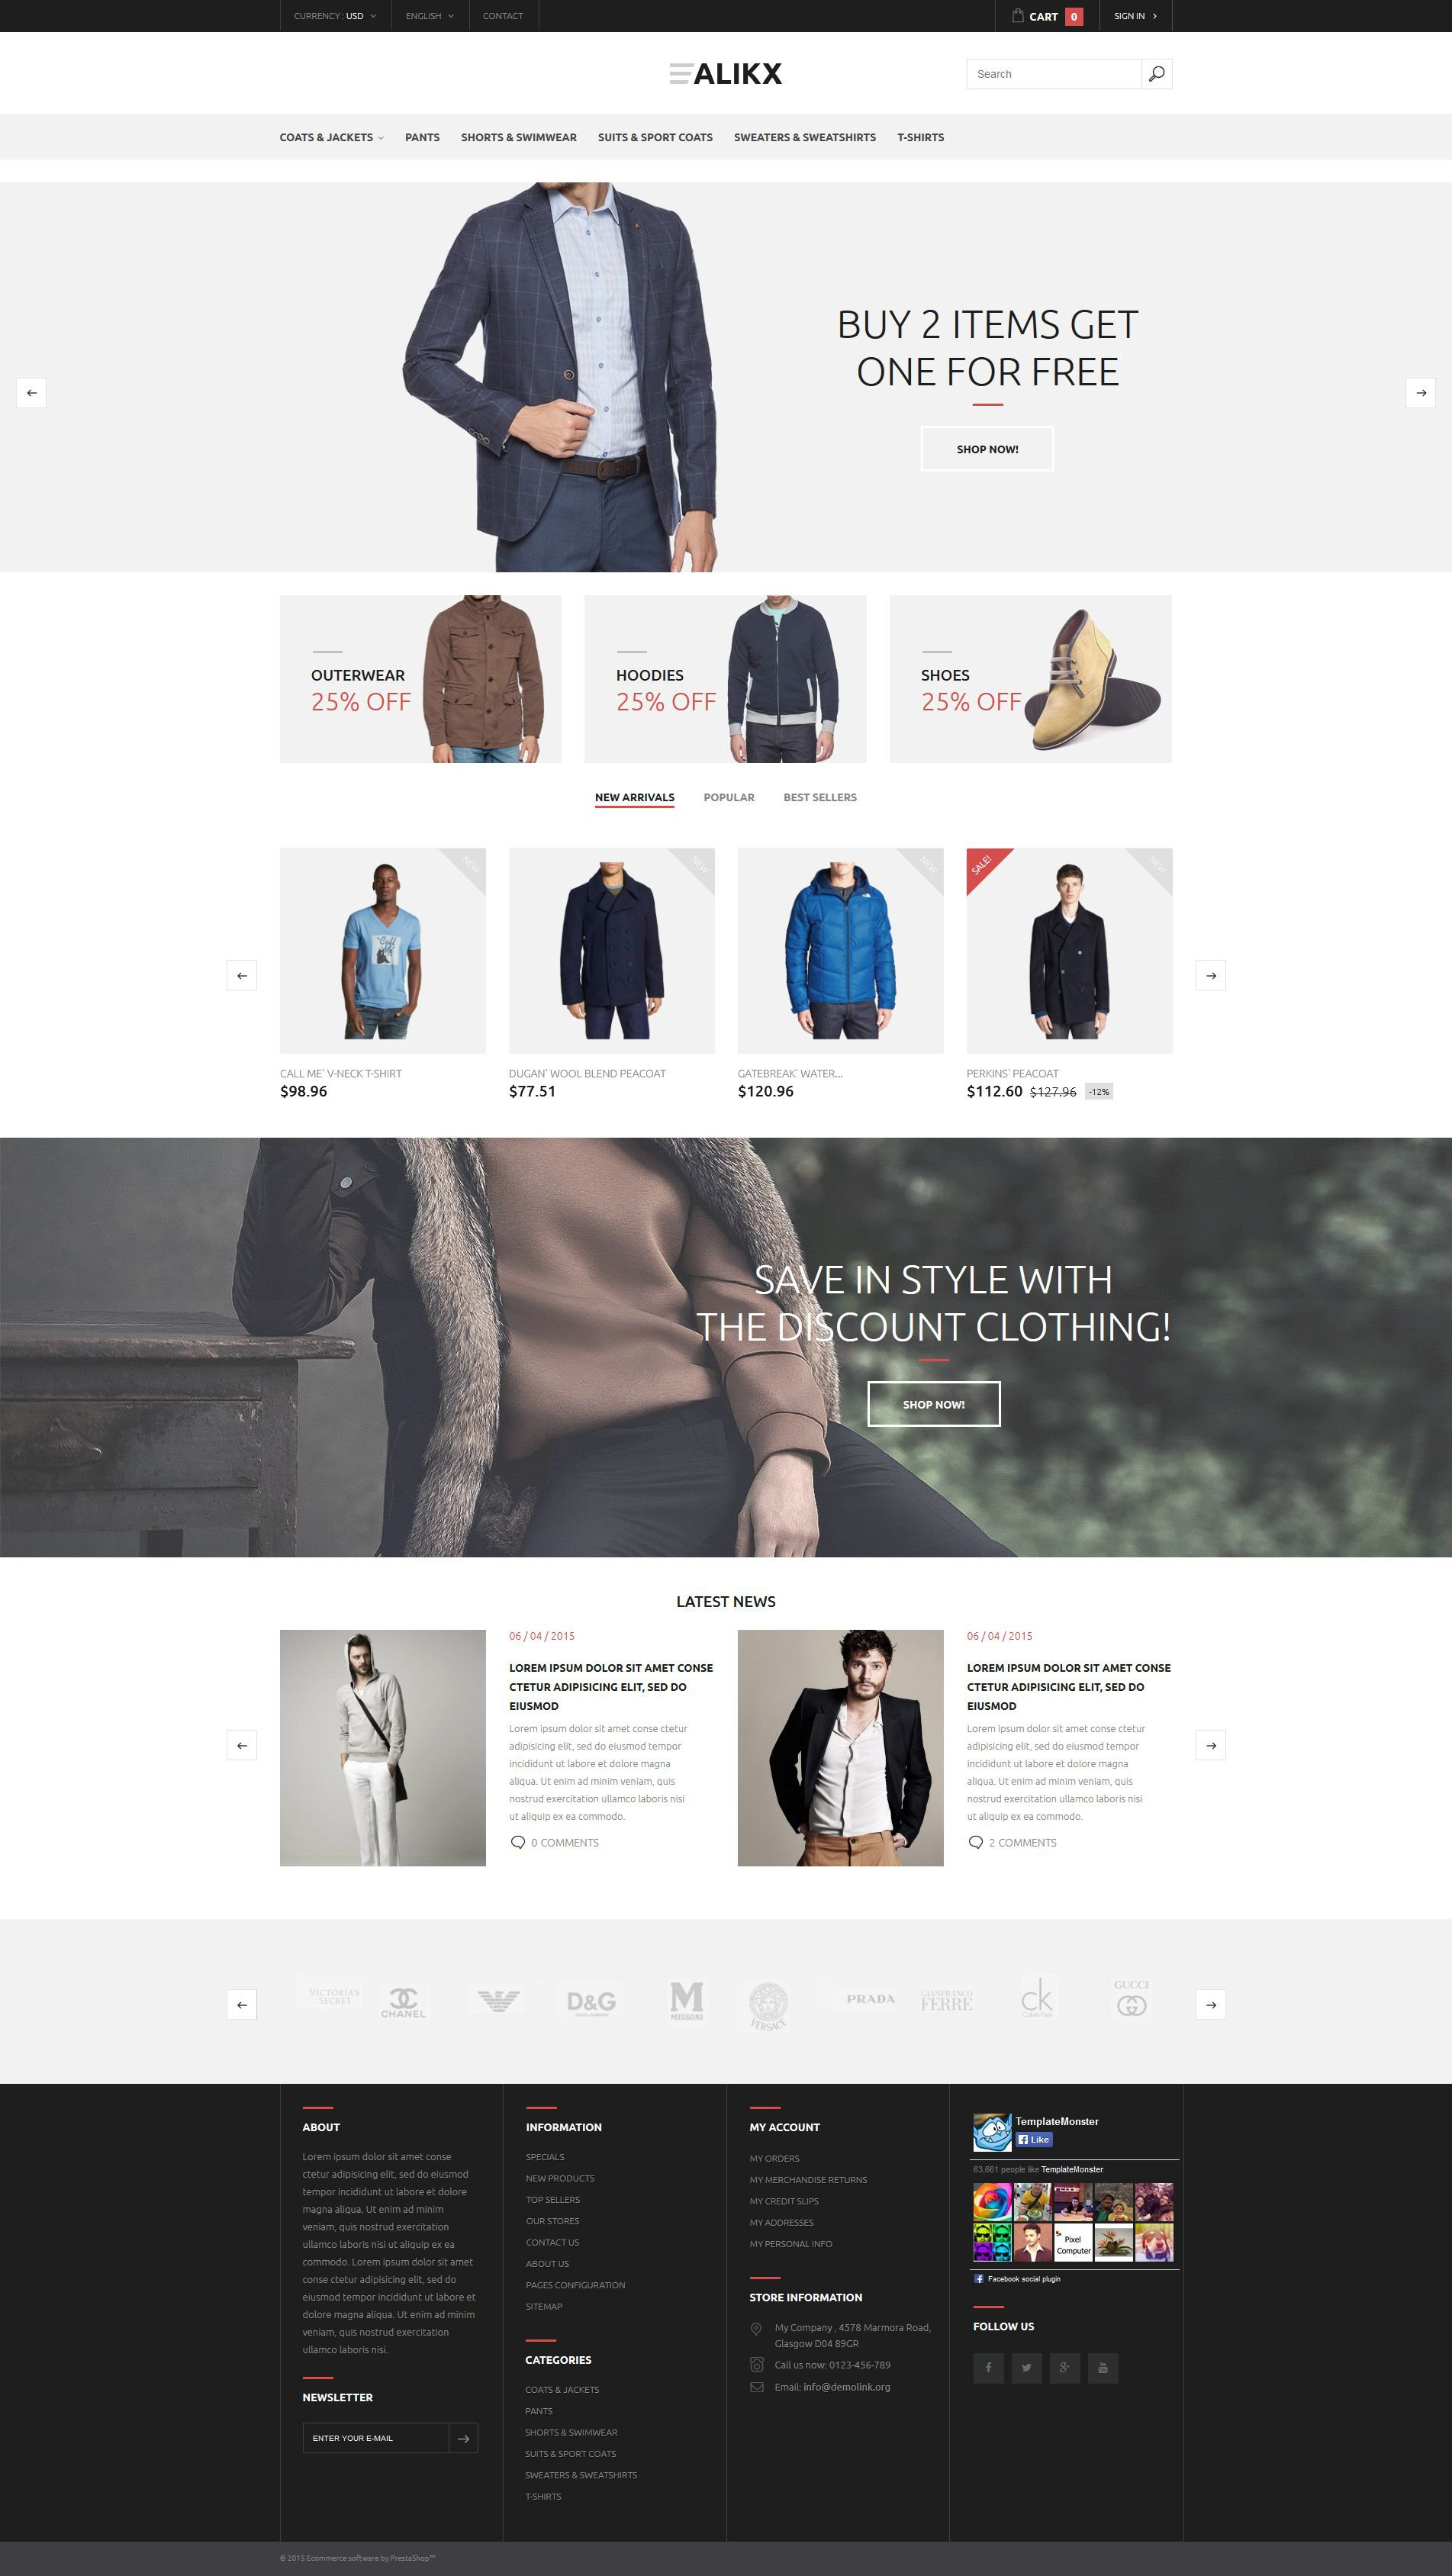 The Alikx Men's Store PrestaShop Design 53669, one of the best PrestaShop themes of its kind (fashion, most popular), also known as Alikx Men's store PrestaShop template, fashion PrestaShop template, new PrestaShop template, style PrestaShop template, brand PrestaShop template, lingerie company PrestaShop template, women PrestaShop template, sexy classic PrestaShop template, stylish  different PrestaShop template, nails PrestaShop template, SPA cosmetic PrestaShop template, health care PrestaShop template, hair and related with Alikx Men's store, fashion, new, style, brand, lingerie company, women, sexy classic, stylish  different, nails, SPA cosmetic, health care, hair, etc.